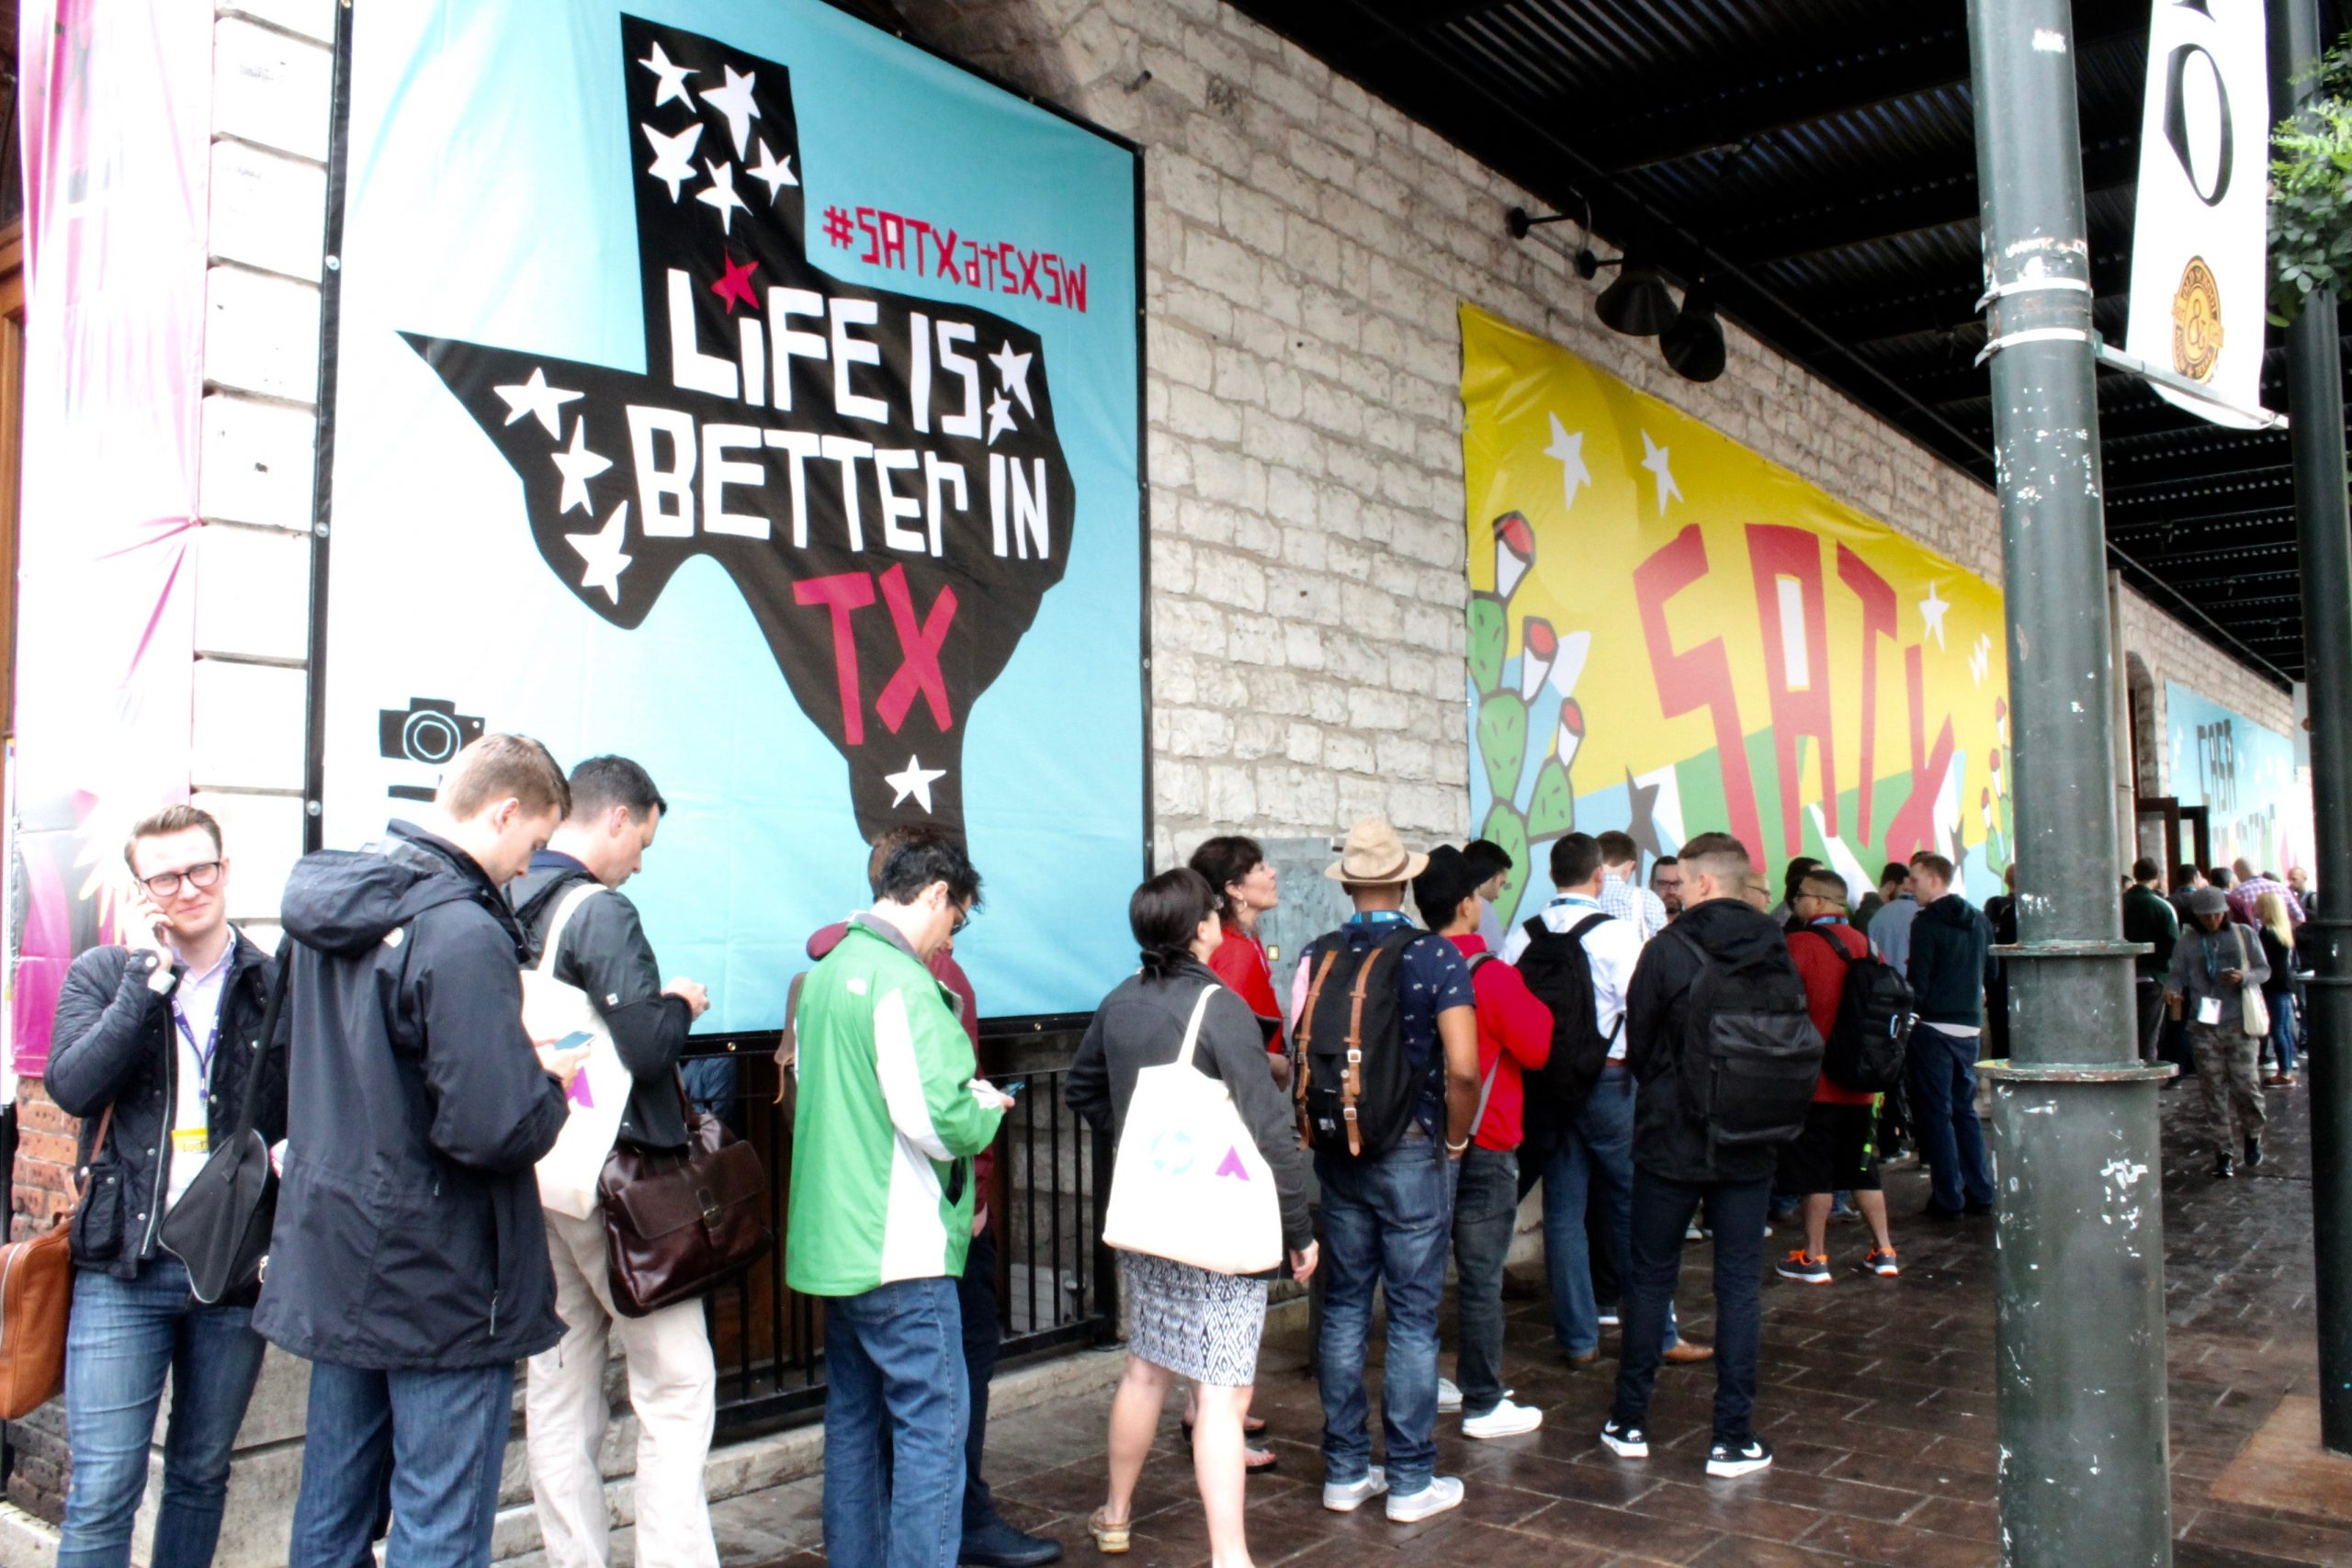 People get in line outside Austin's Old School Bar and Grill, aka Casa San Antonio, for a panel discussion on sports franchise branding in the digital age on Friday, March 11, 2016. Photo by Edmond Ortiz